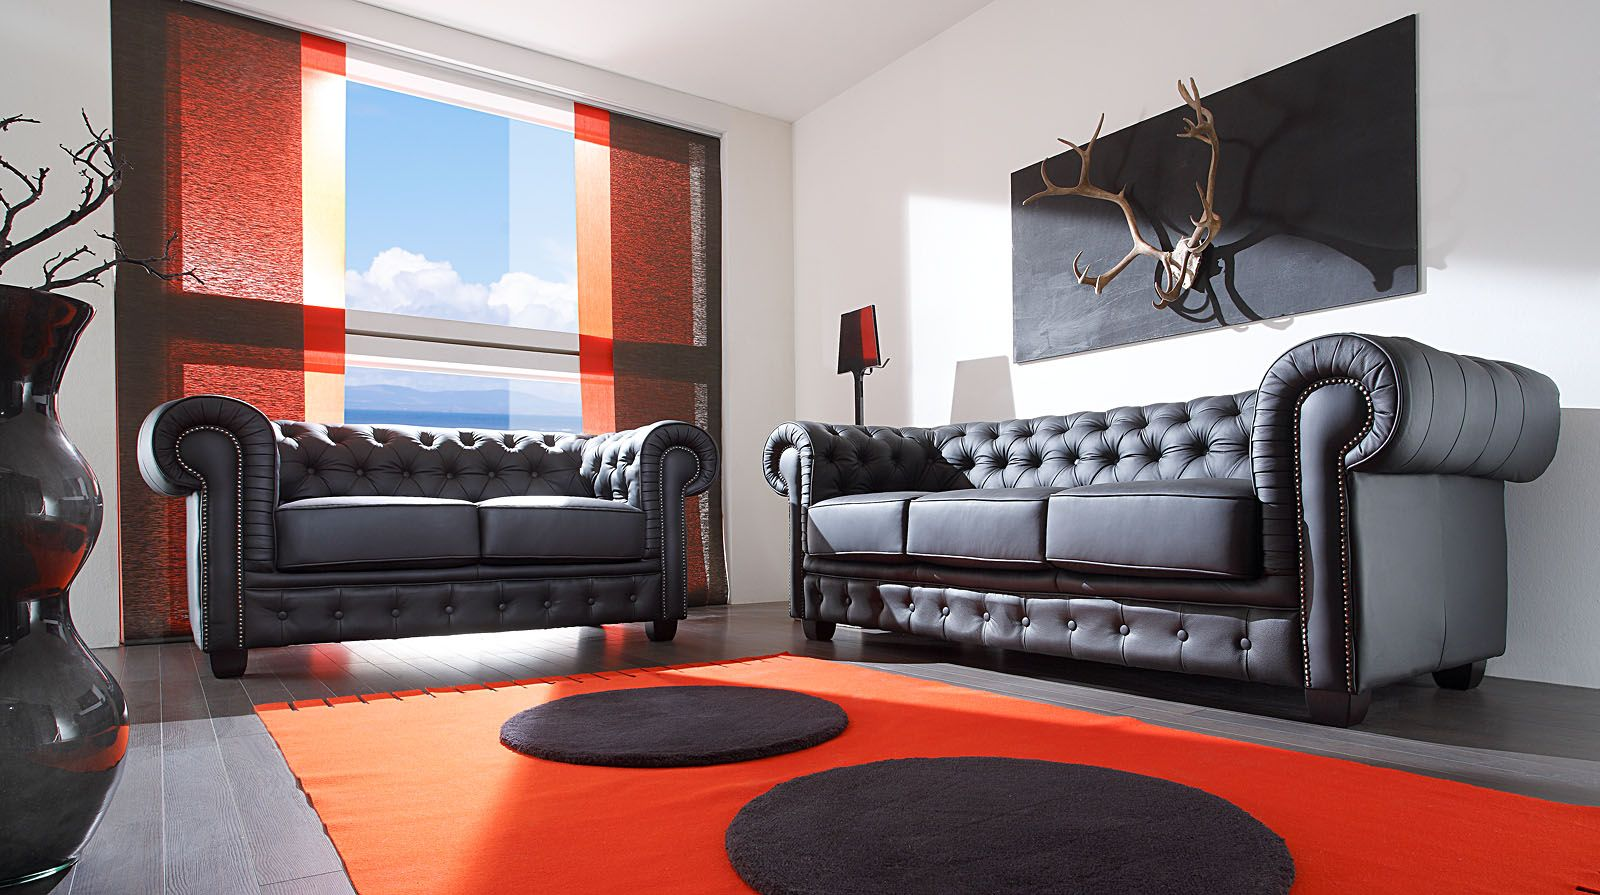 Chesterfield einrichtungsstil modern  set Chesterfield black (real leather) by massivum | Sofas, Sessel ...